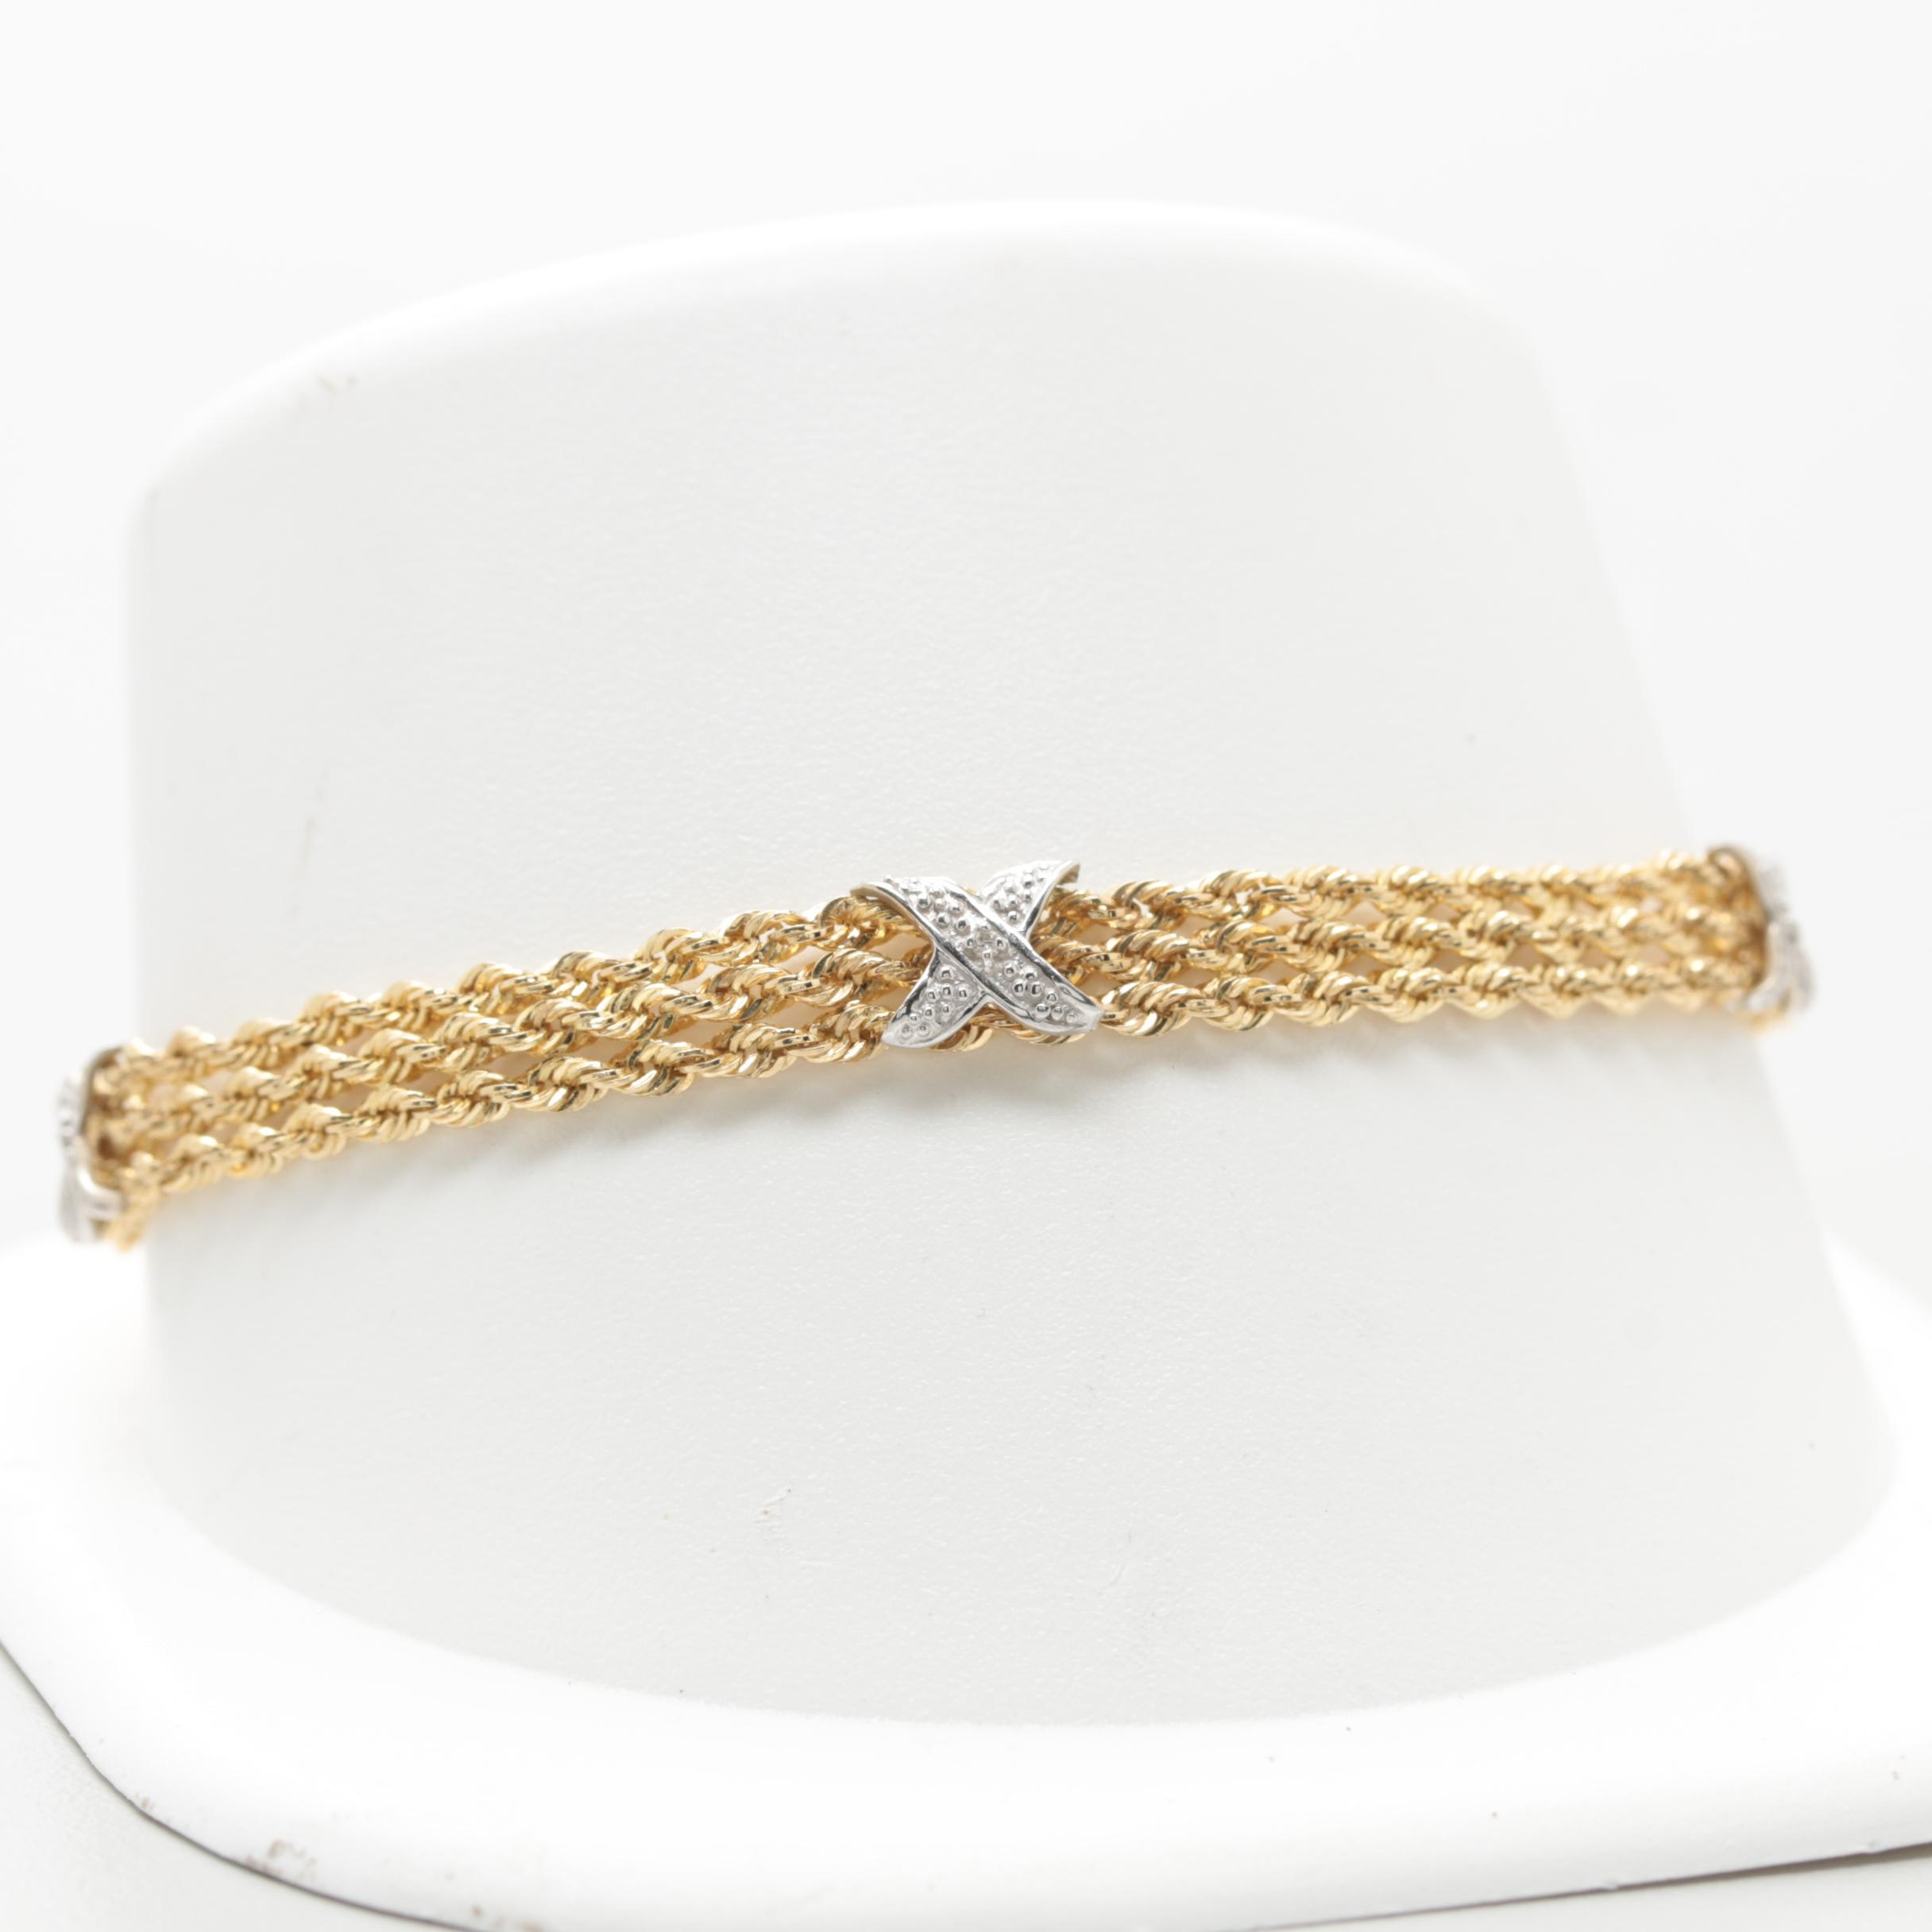 10K Yellow Gold Diamond Triple Rope Bracelet with White Gold Accents